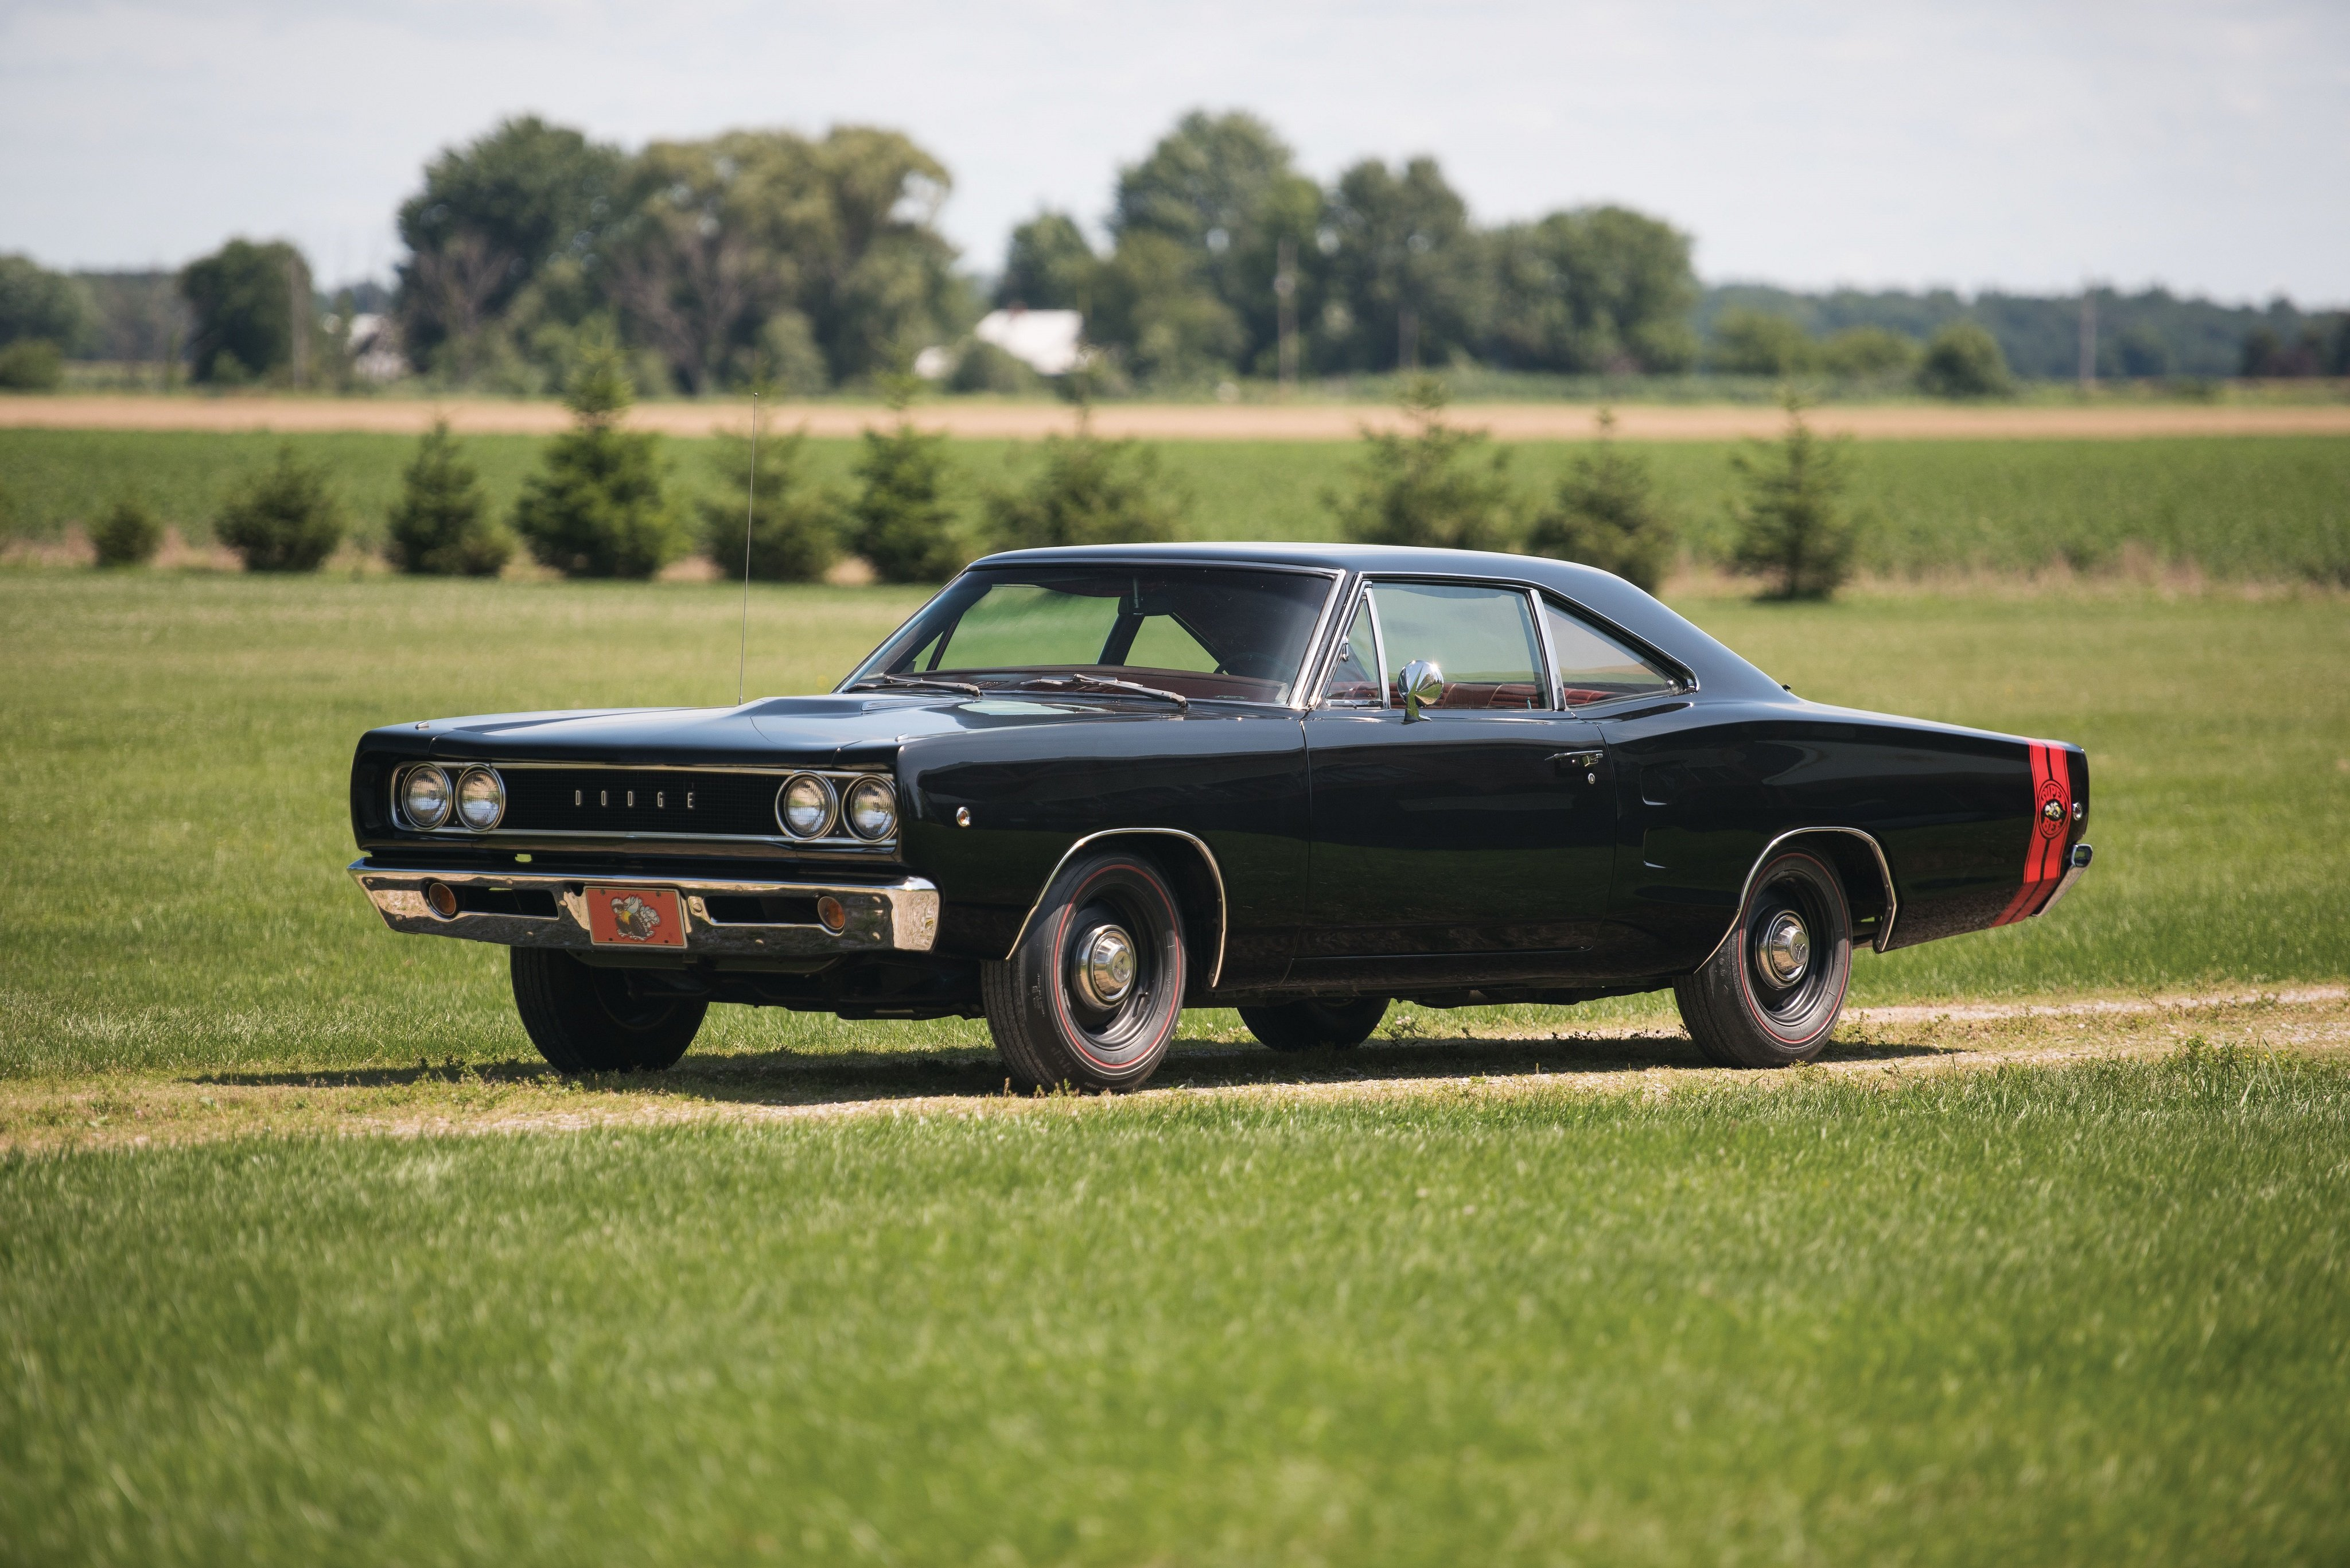 1968 Dodge Coronet Super Bee Hardtop Coupe Cars Coupe